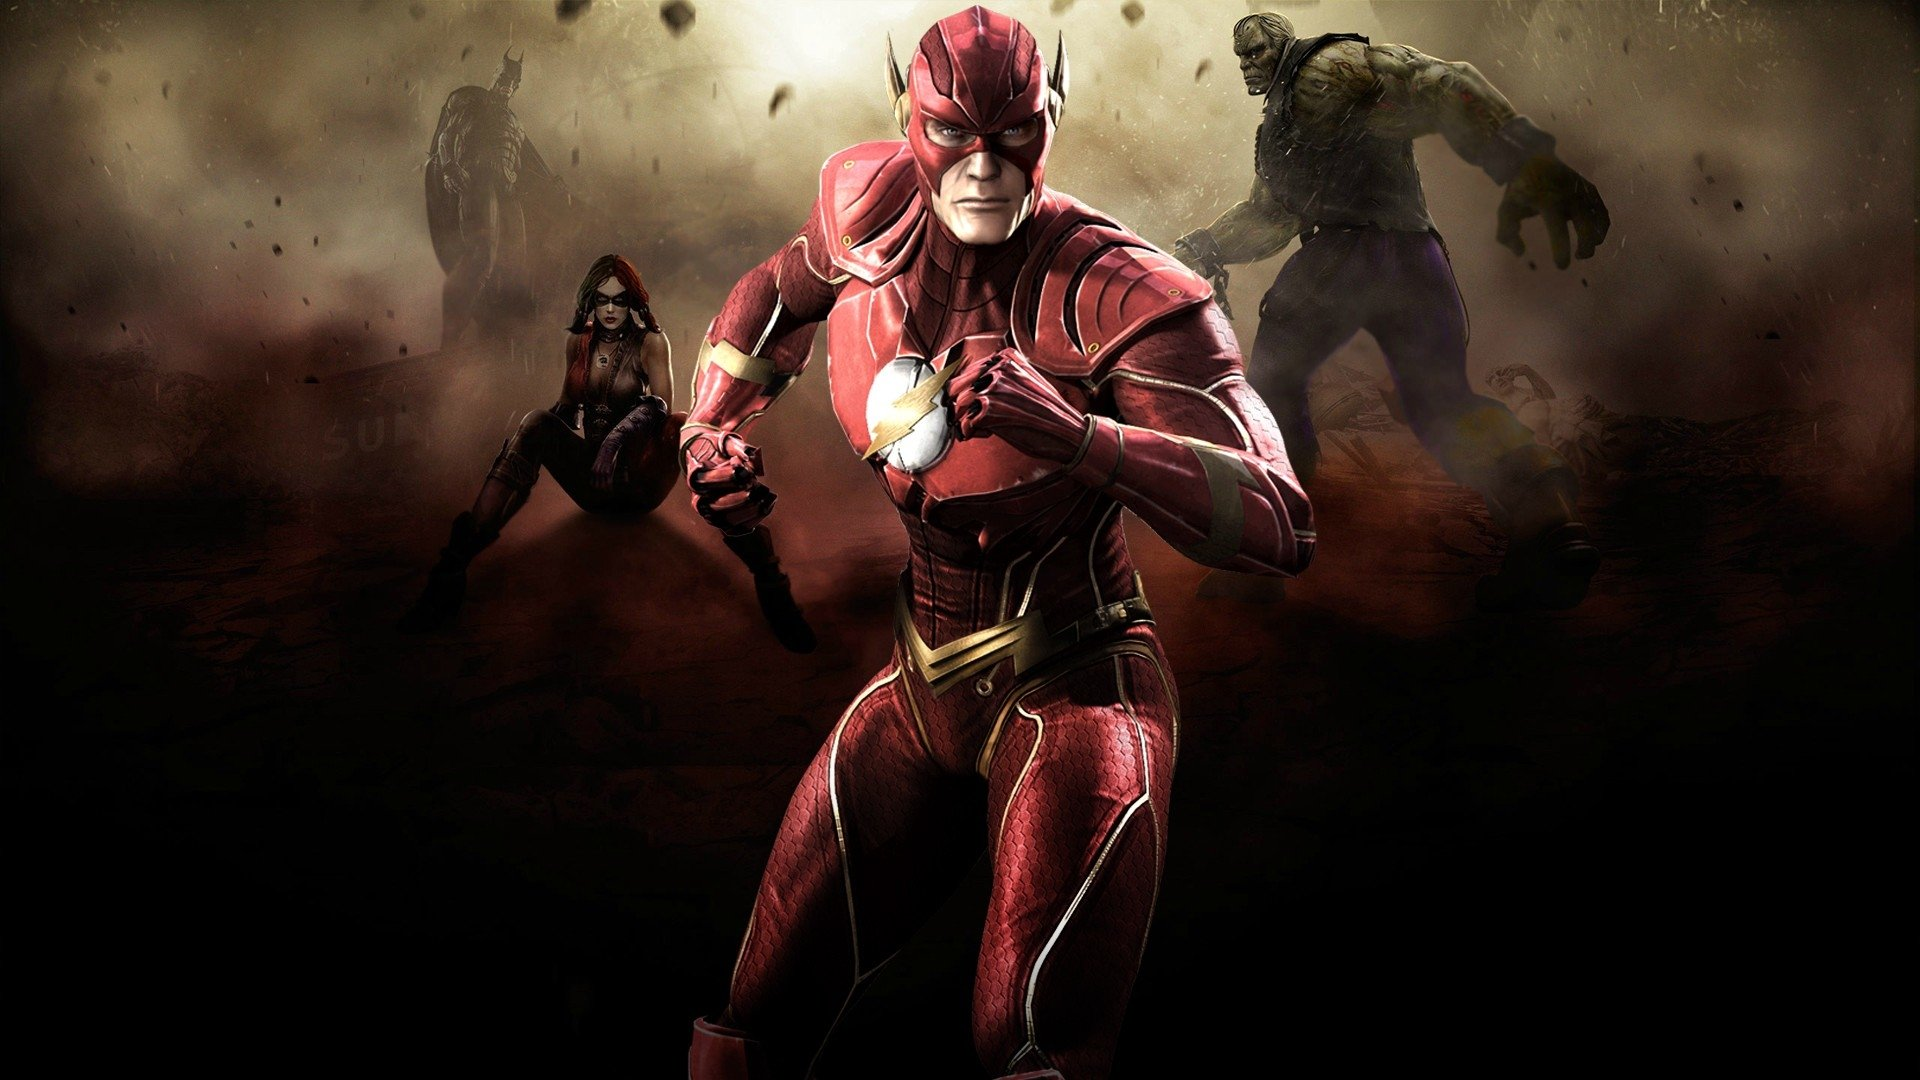 107 Injustice Gods Among Us HD Wallpapers